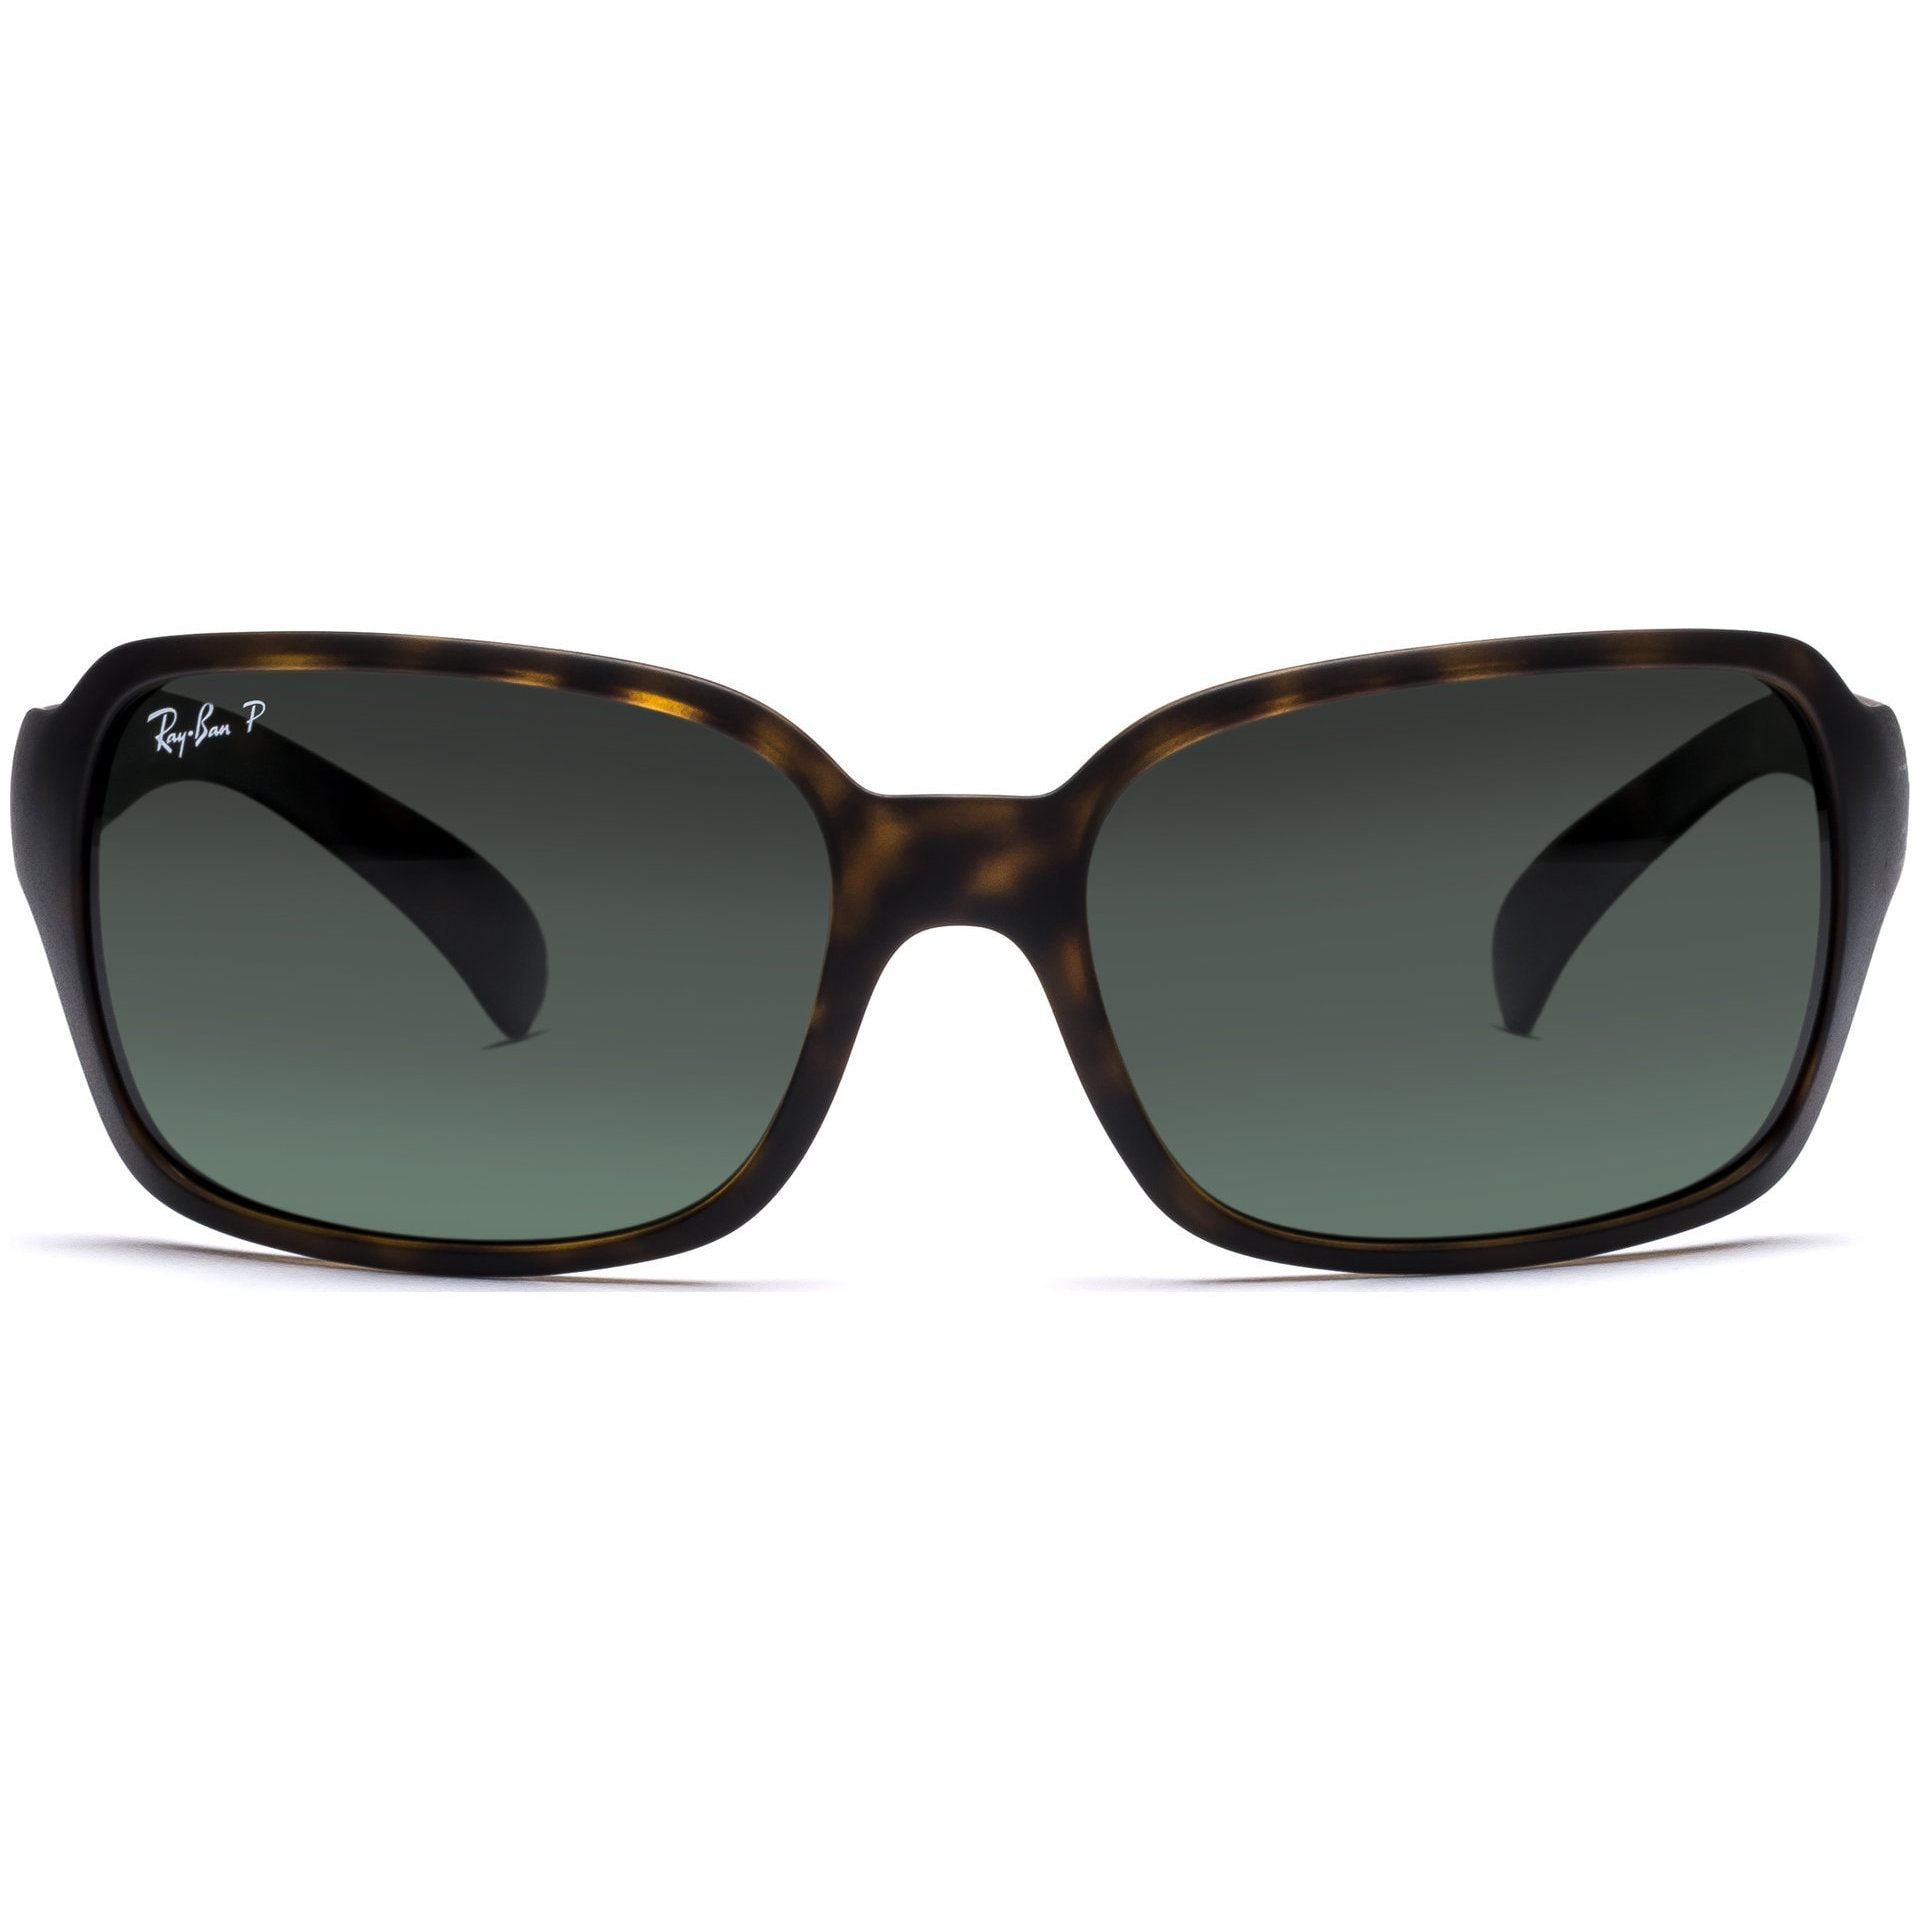 ec80736e4f Shop Ray-Ban RB4068 894 58 Tortoise Frame Polarized Green 60mm Lens  Sunglasses - Free Shipping Today - Overstock - 14431334